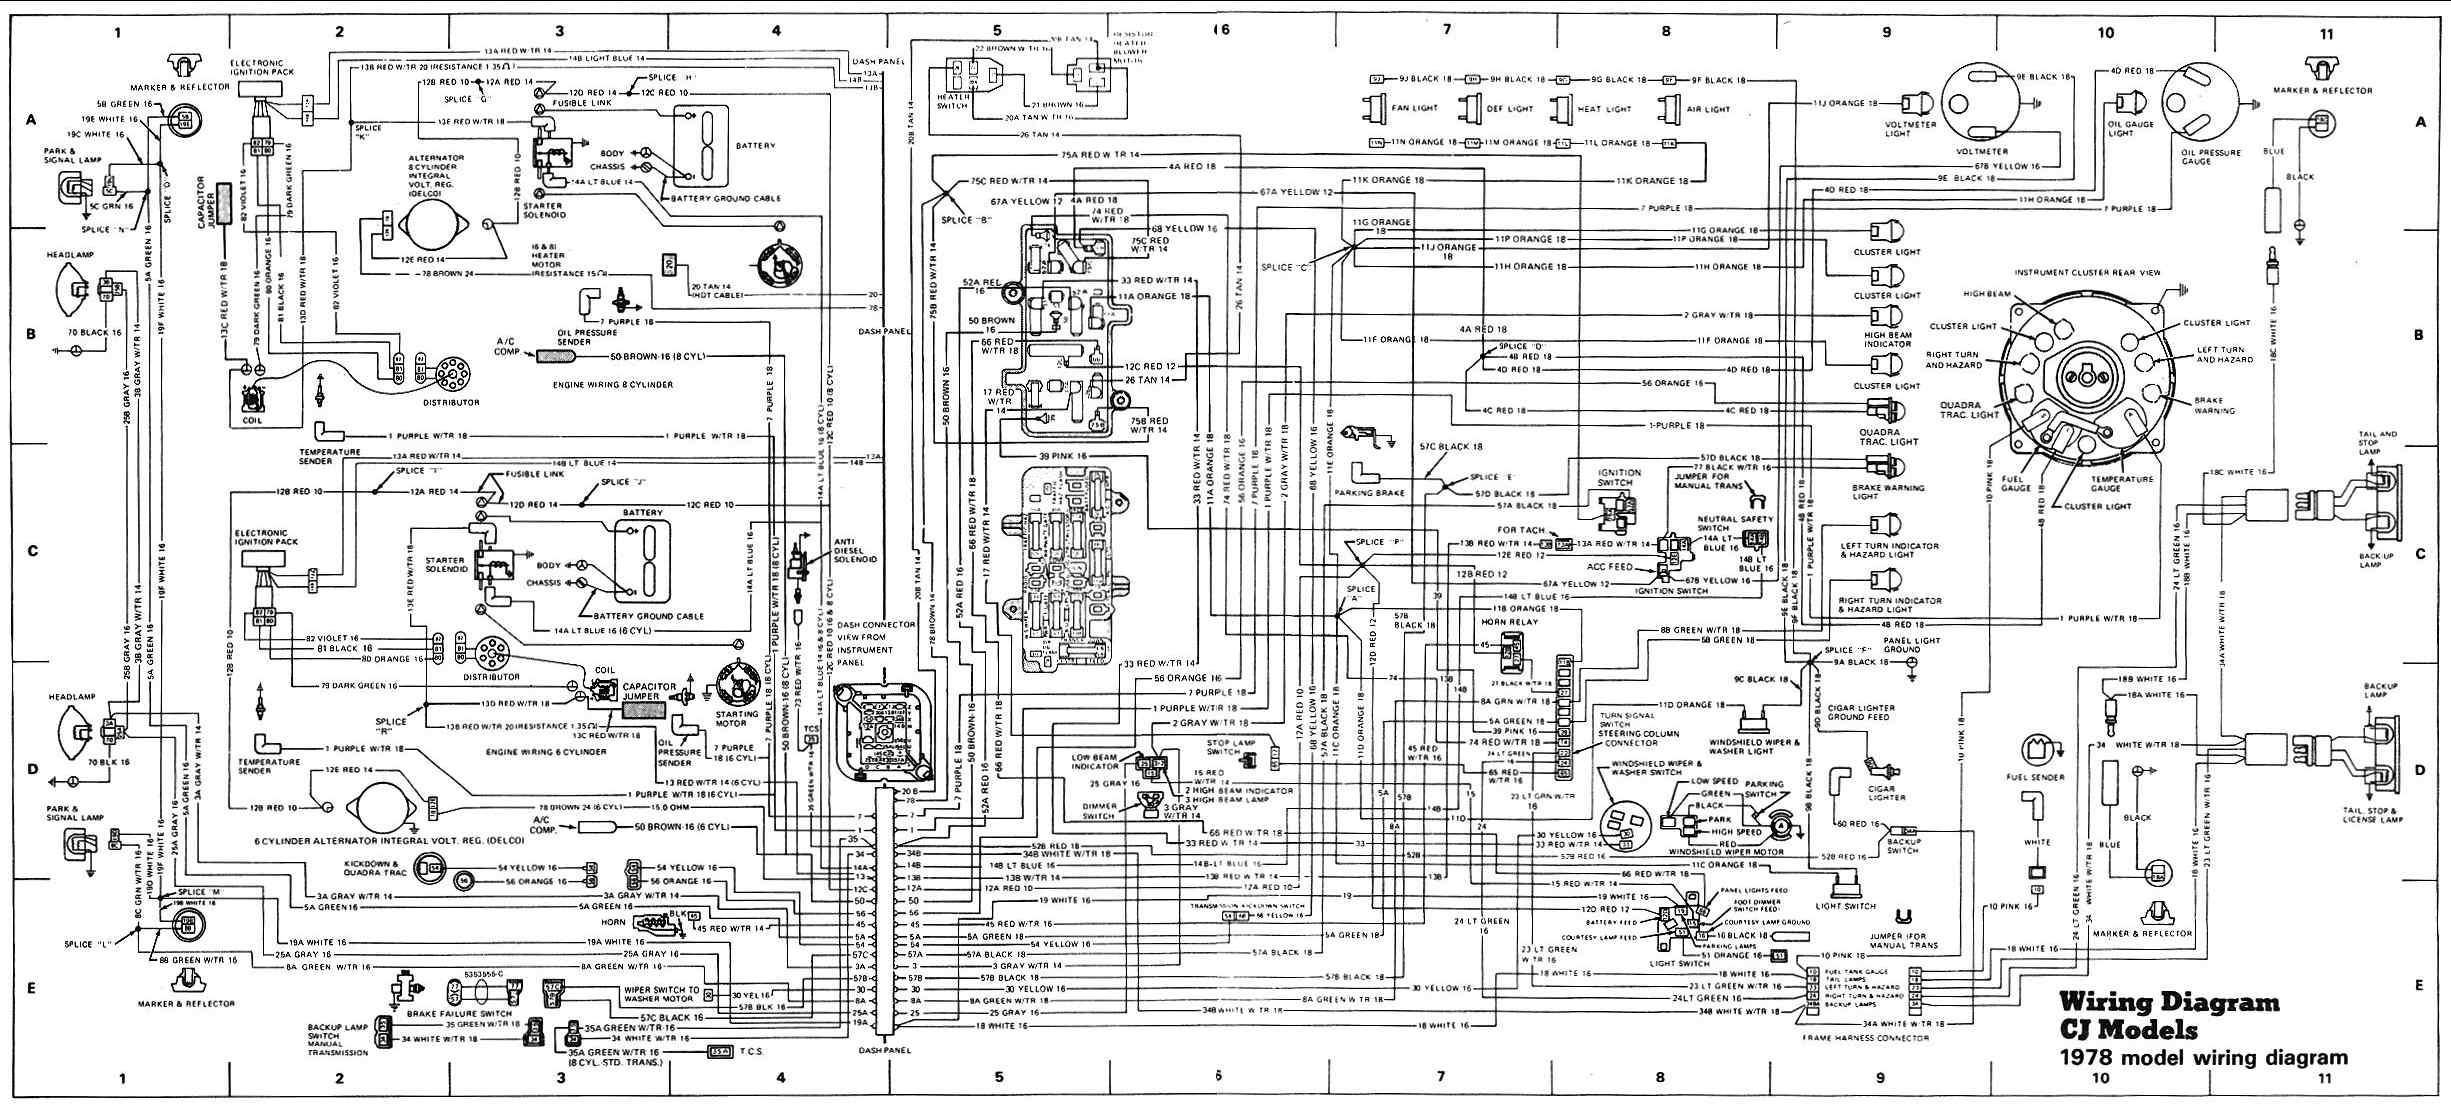 Jeep Cj5 Wiring Diagram from www.automotive-manuals.net